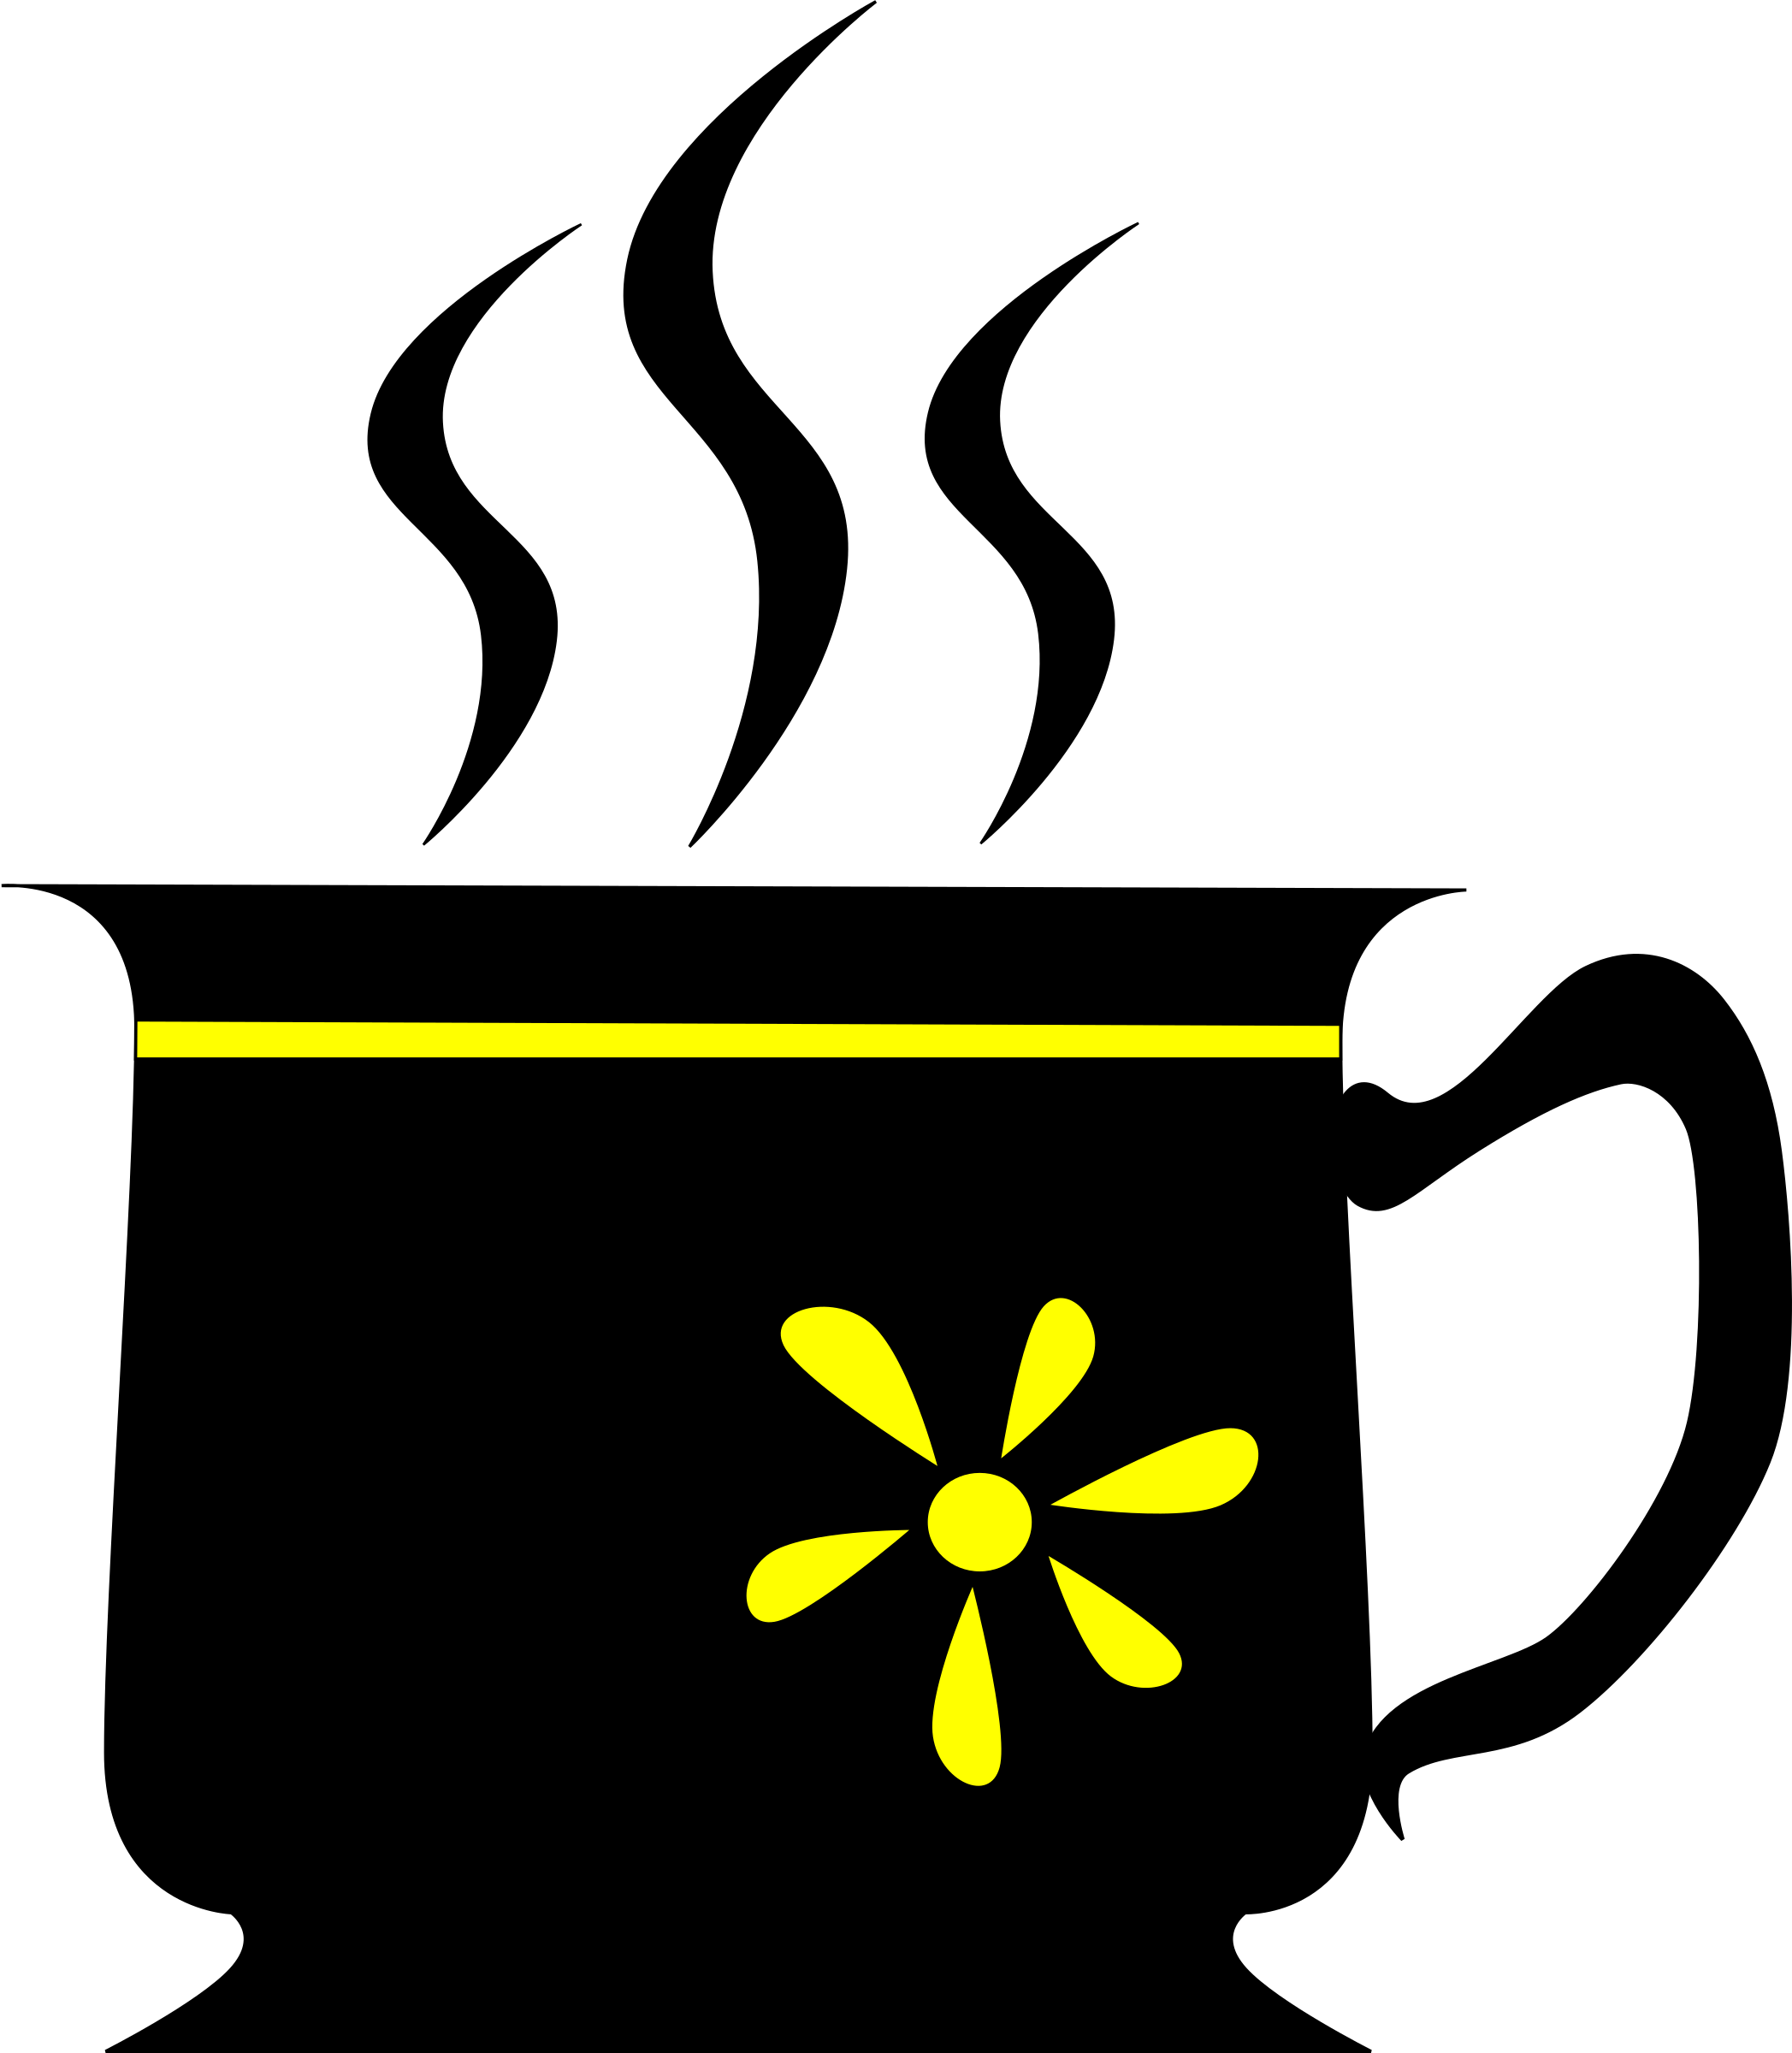 Cup clipart black and white. With yellow flower big